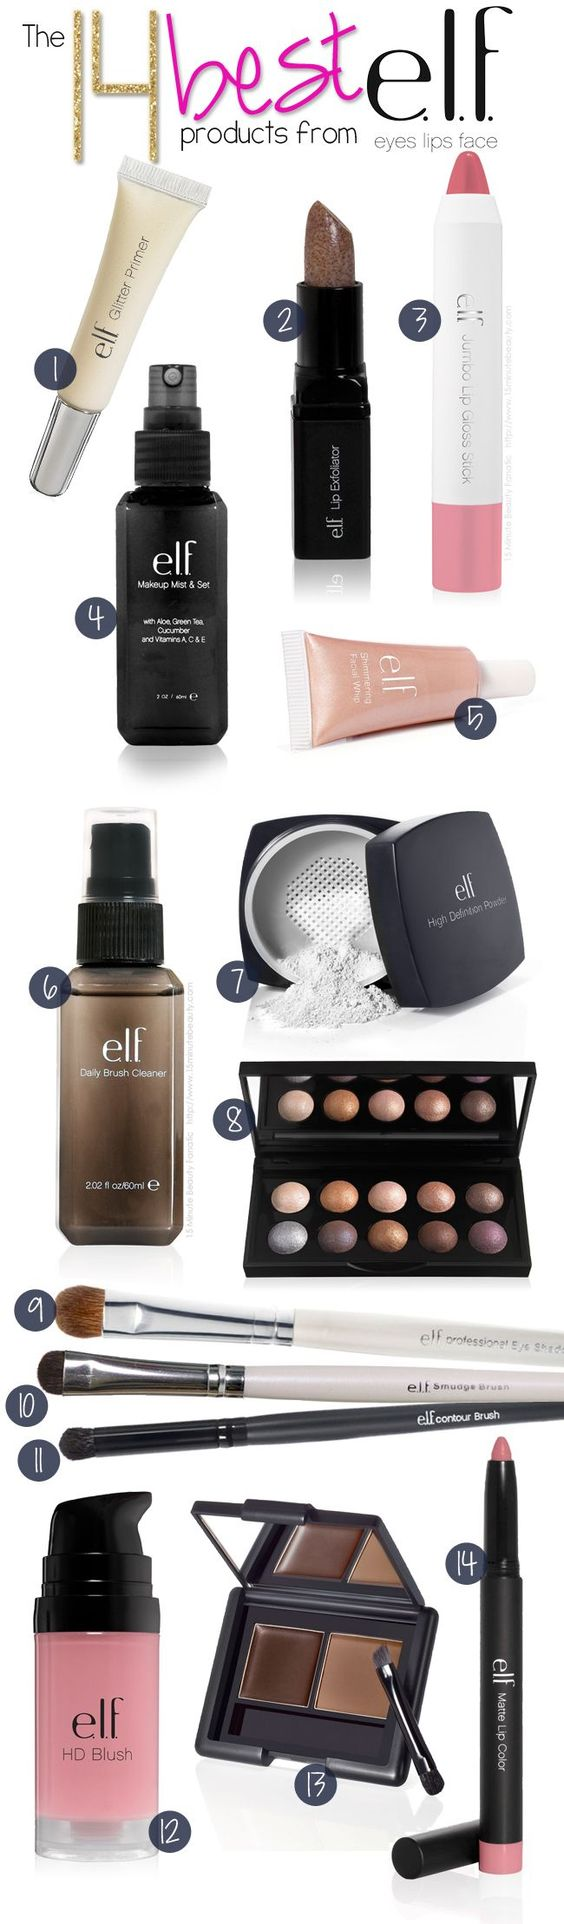 @15minbeauty shares her 14 favorite, must have beauty products from e.l.f.! http://www.15minutebeauty.com/2013/10/best-makeup-products-elf-eyes-lips-face.html